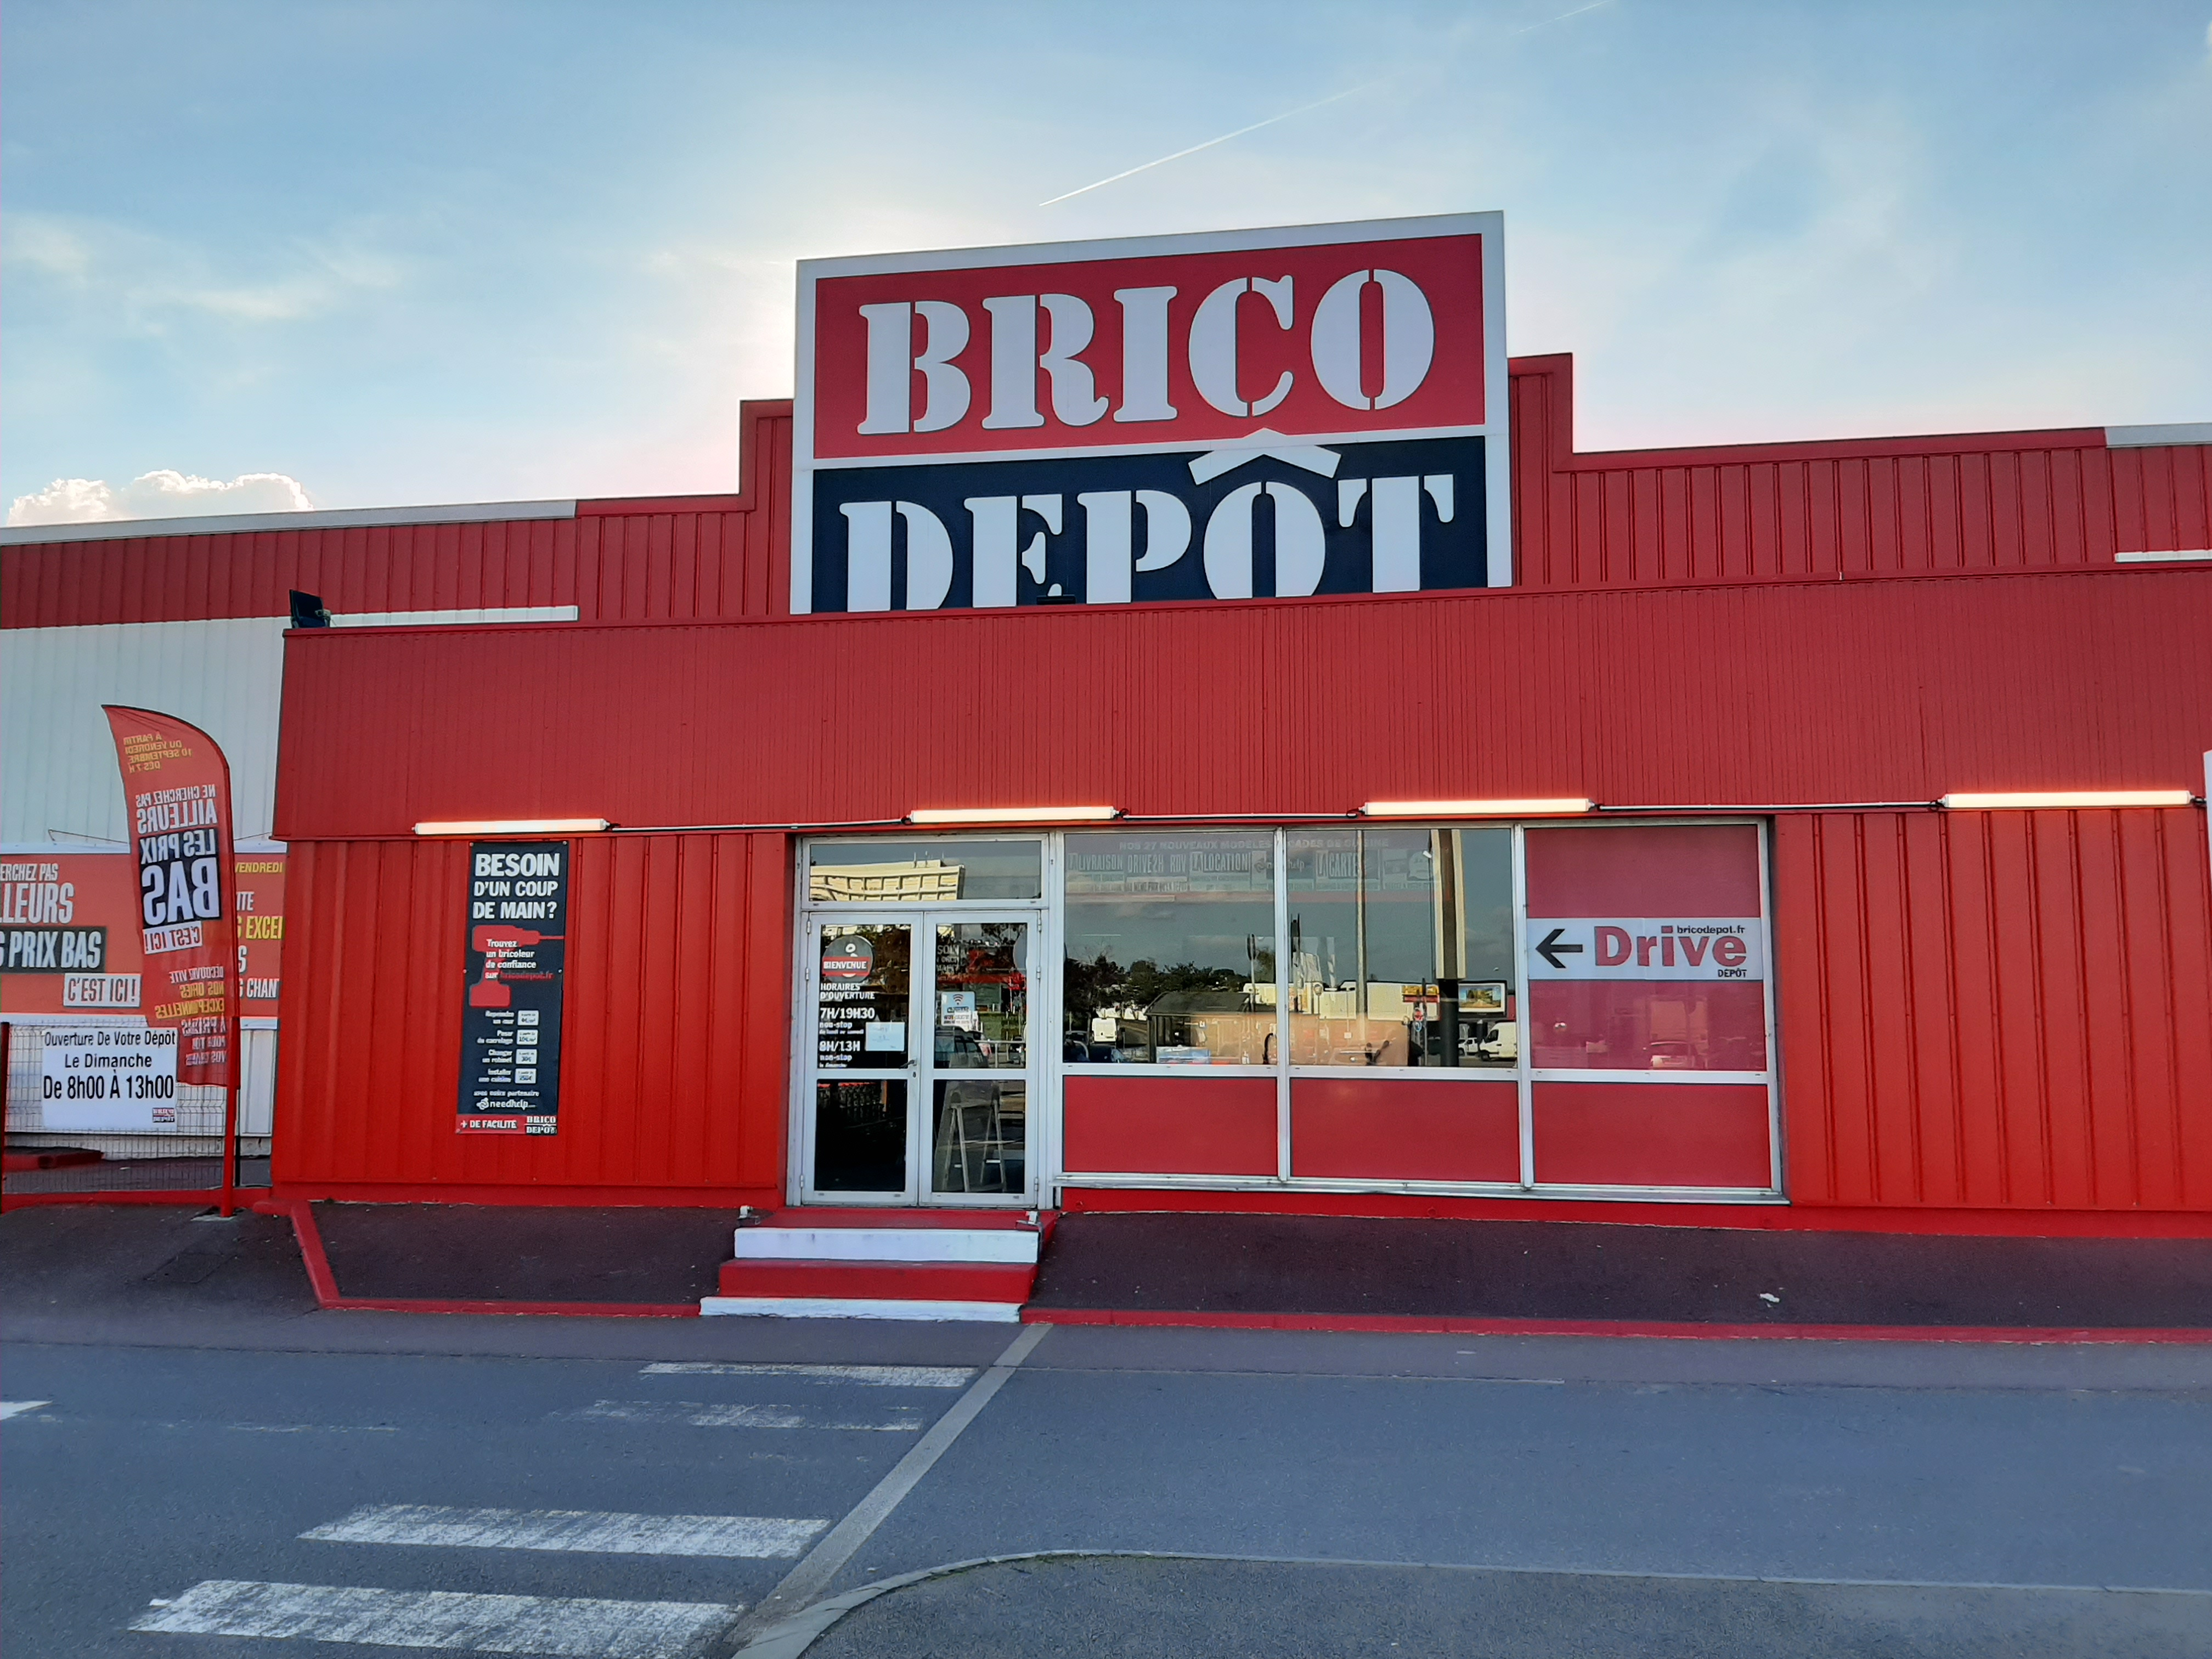 Horaire brico depot barberey saint sulpice - Brico depot cambrai horaire ...